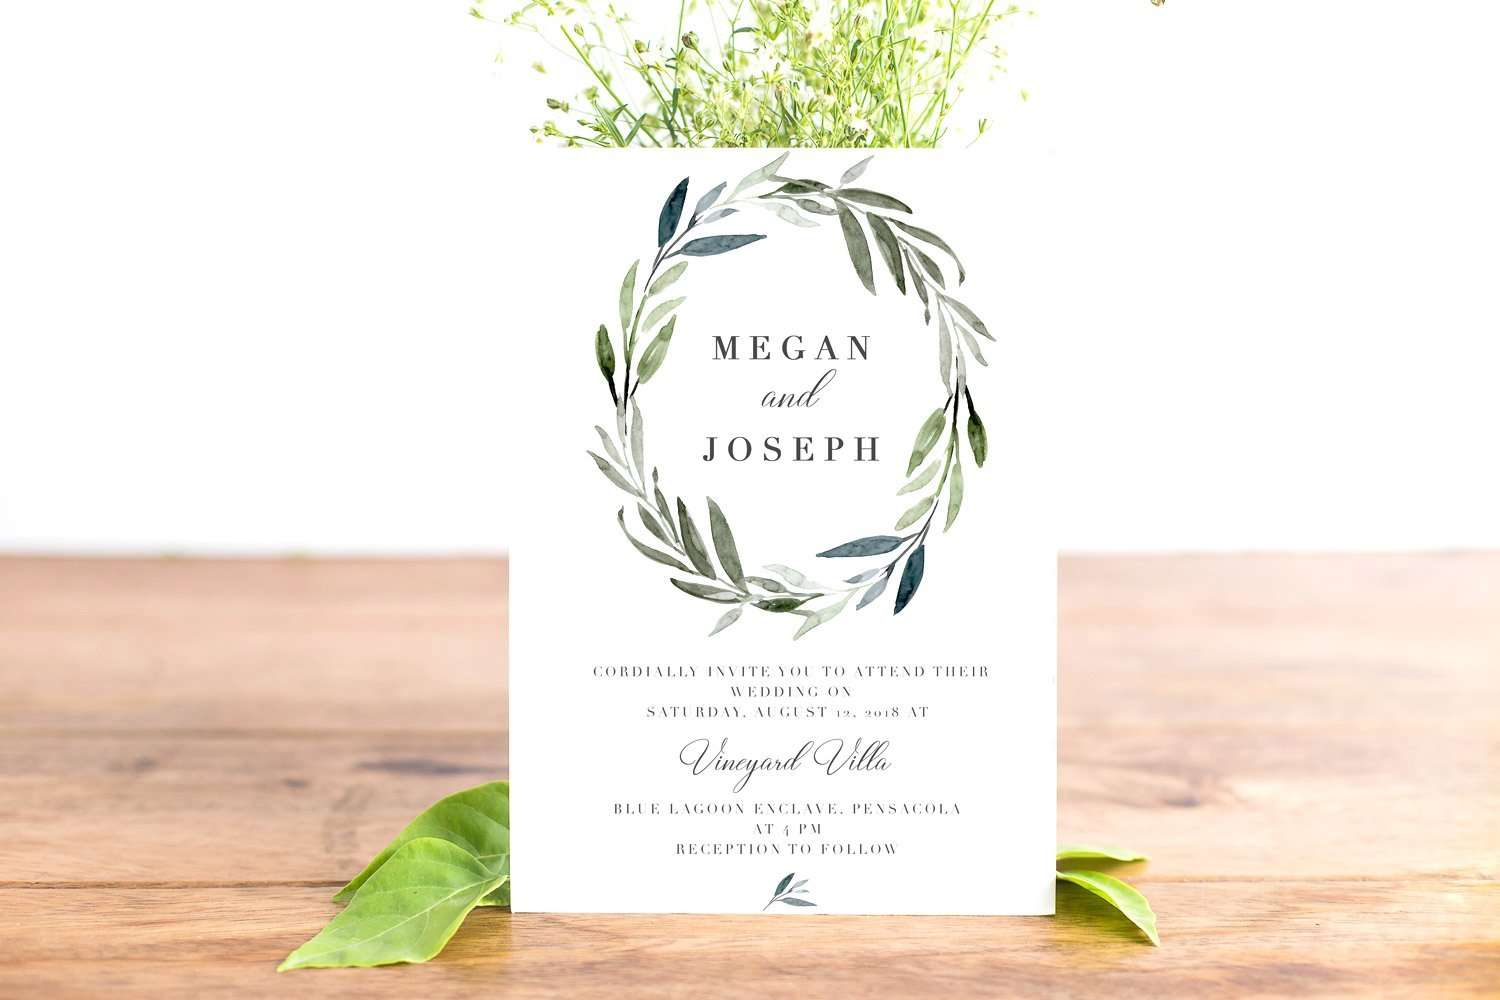 Clipart For Wedding Invitations Free: Modern Watercolor Leaves Clipart For Wedding Invitations